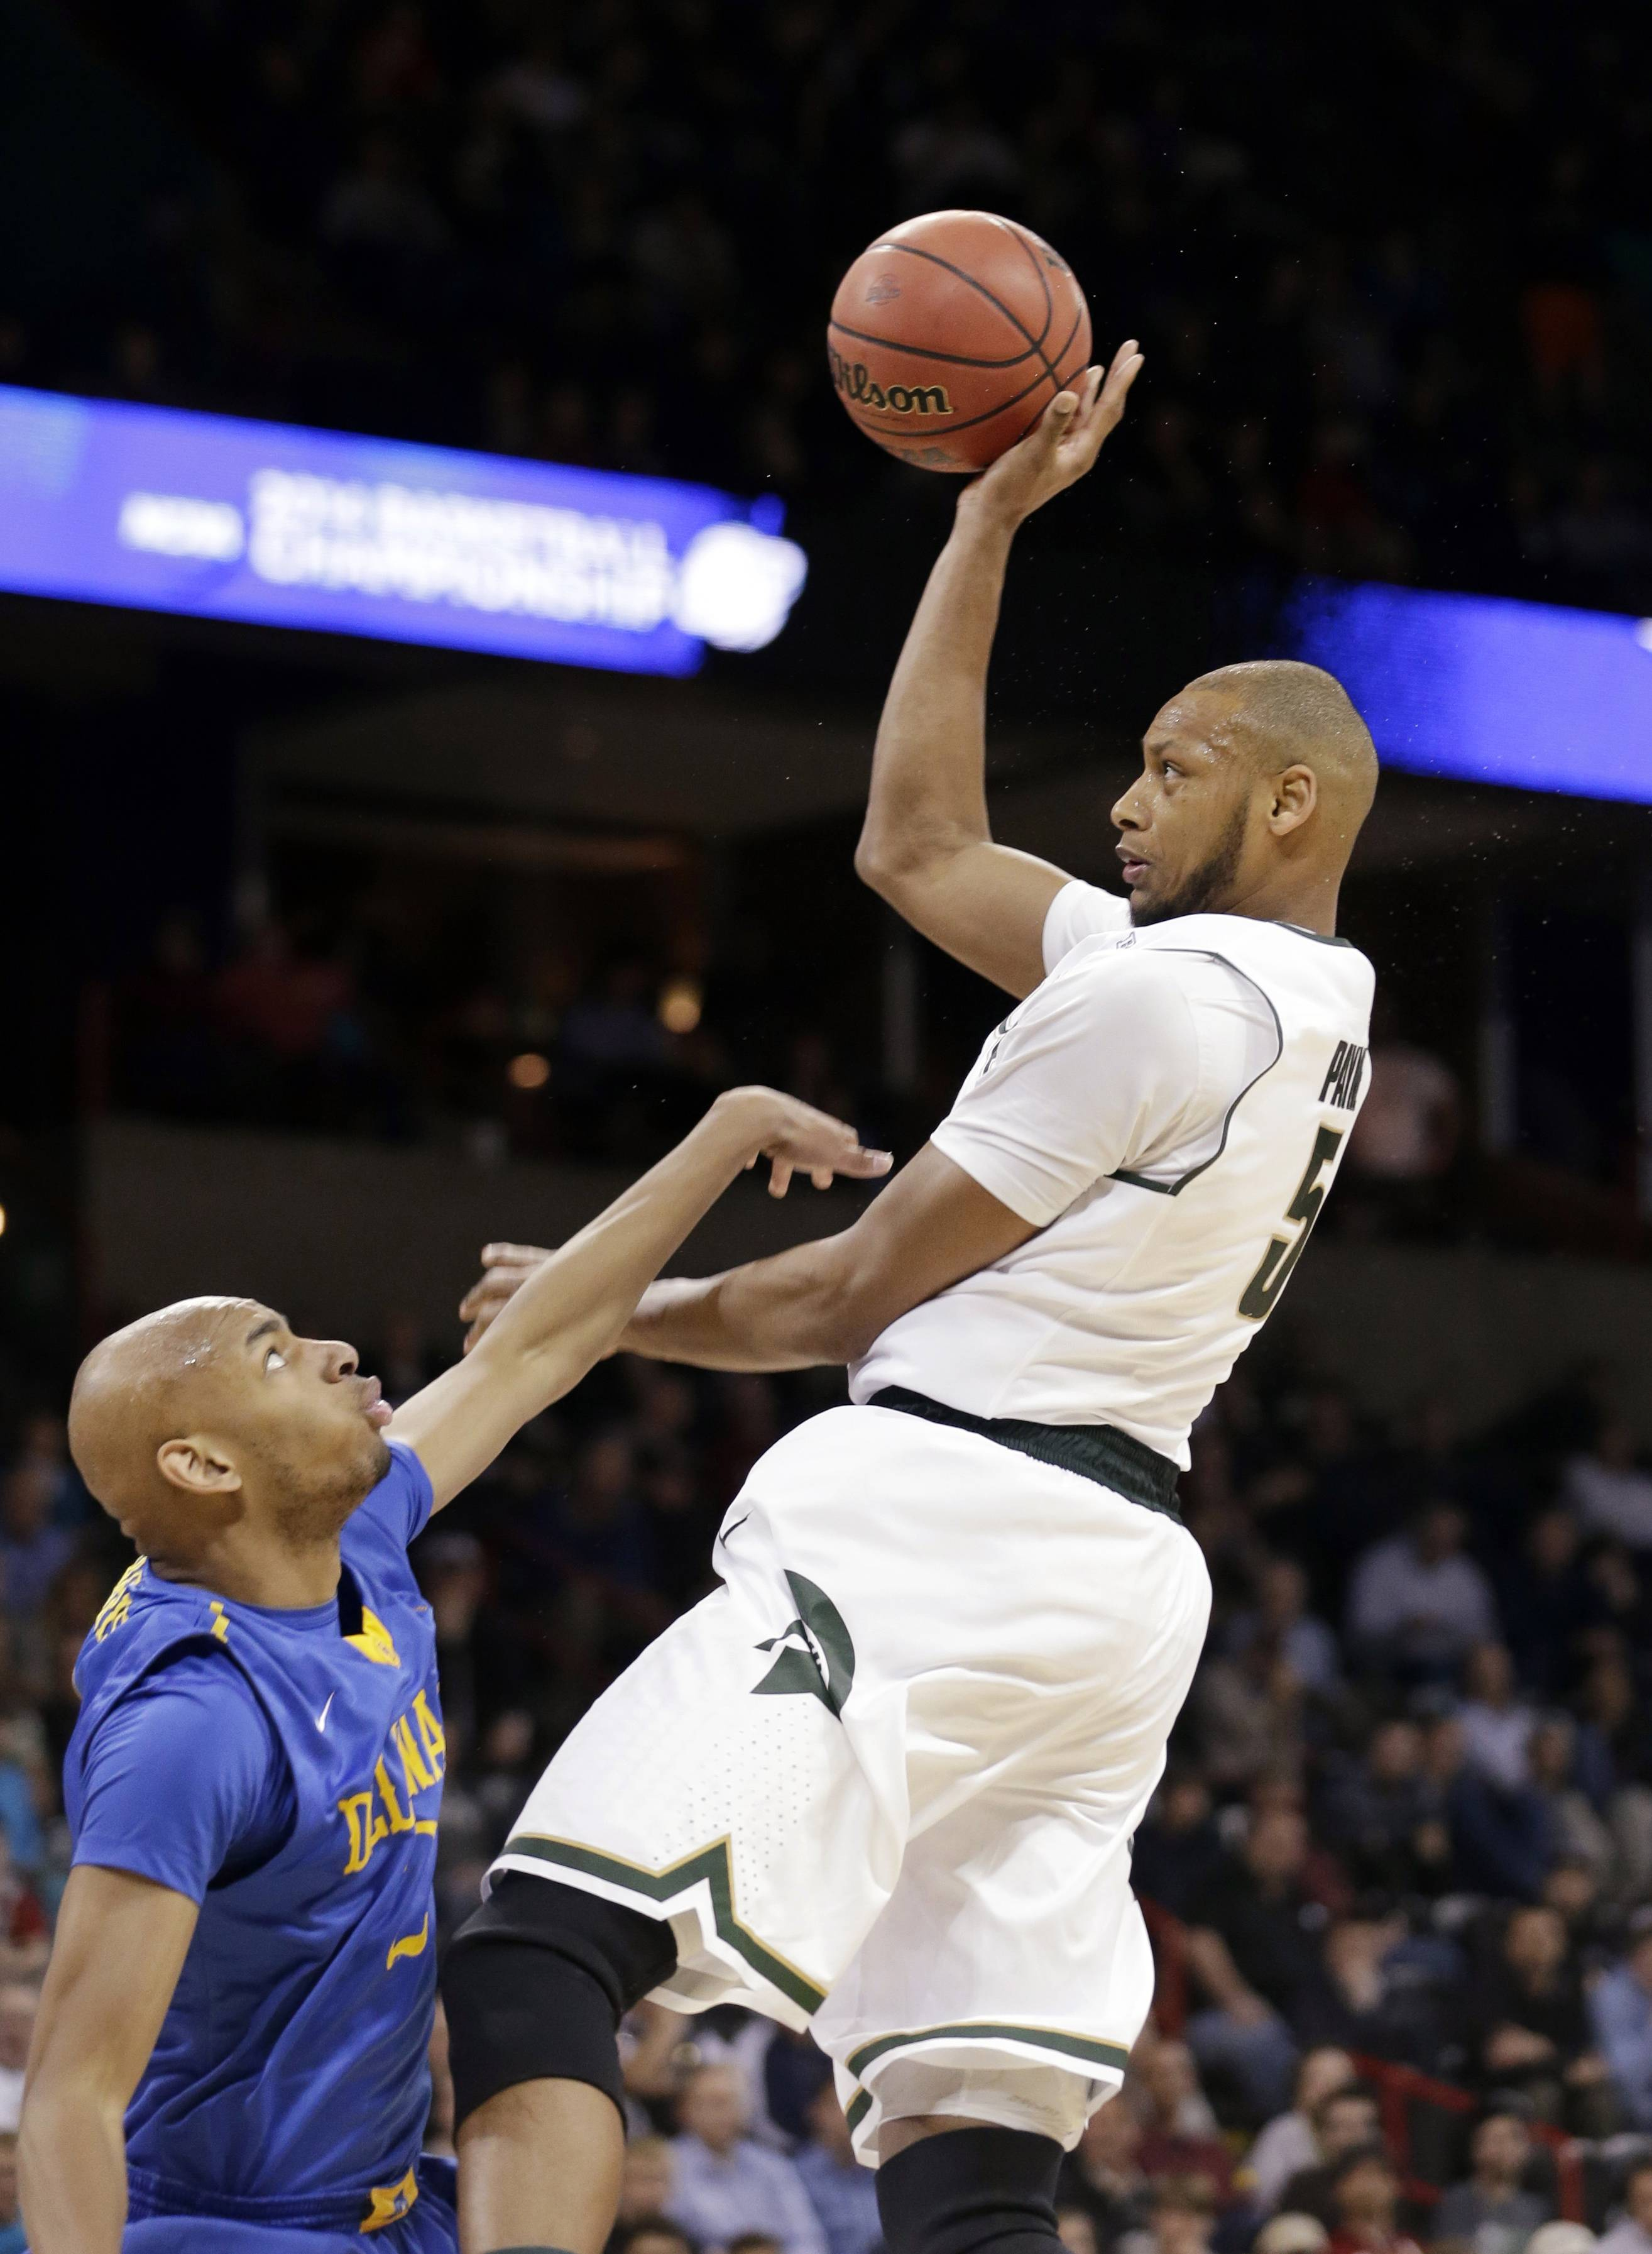 Michigan State's Adreian Payne, right, shoots over Delaware's Barnett Harris in the second half during the second round of the NCAA college basketball tournament in Spokane, Wash., Thursday, March 20, 2014. Michigan State won 93-78.